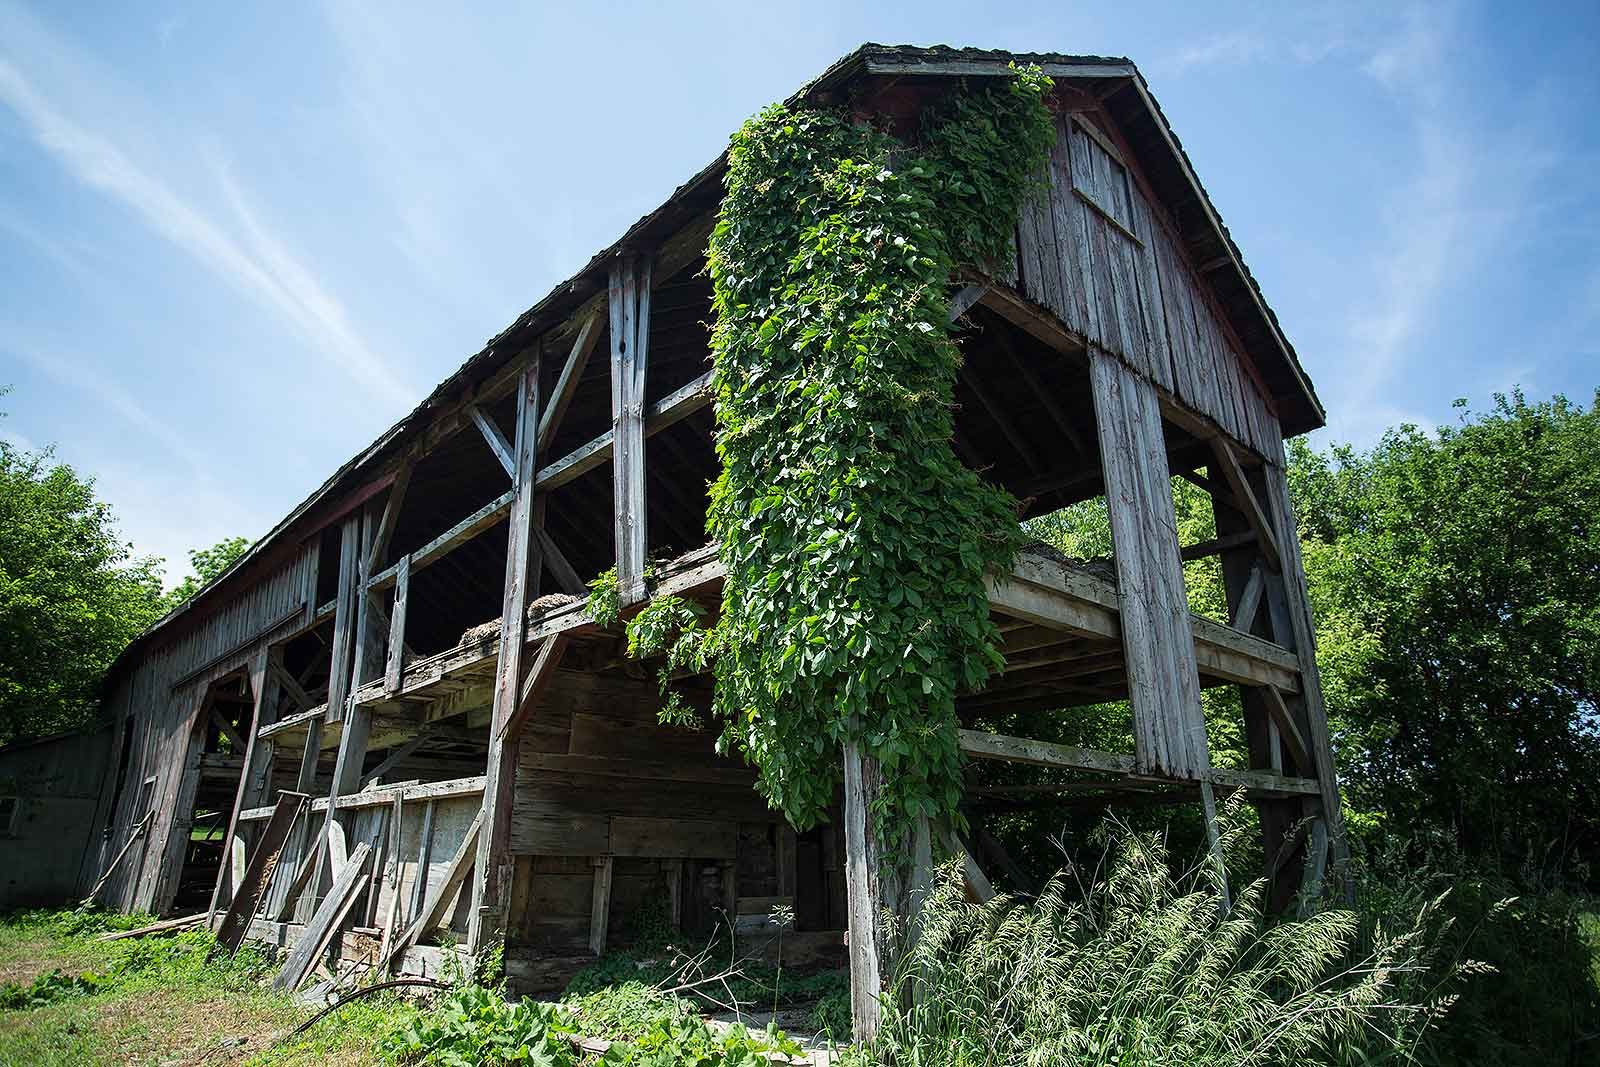 Over time, these wood barns were subjected to extreme temperatures, wind and rain.